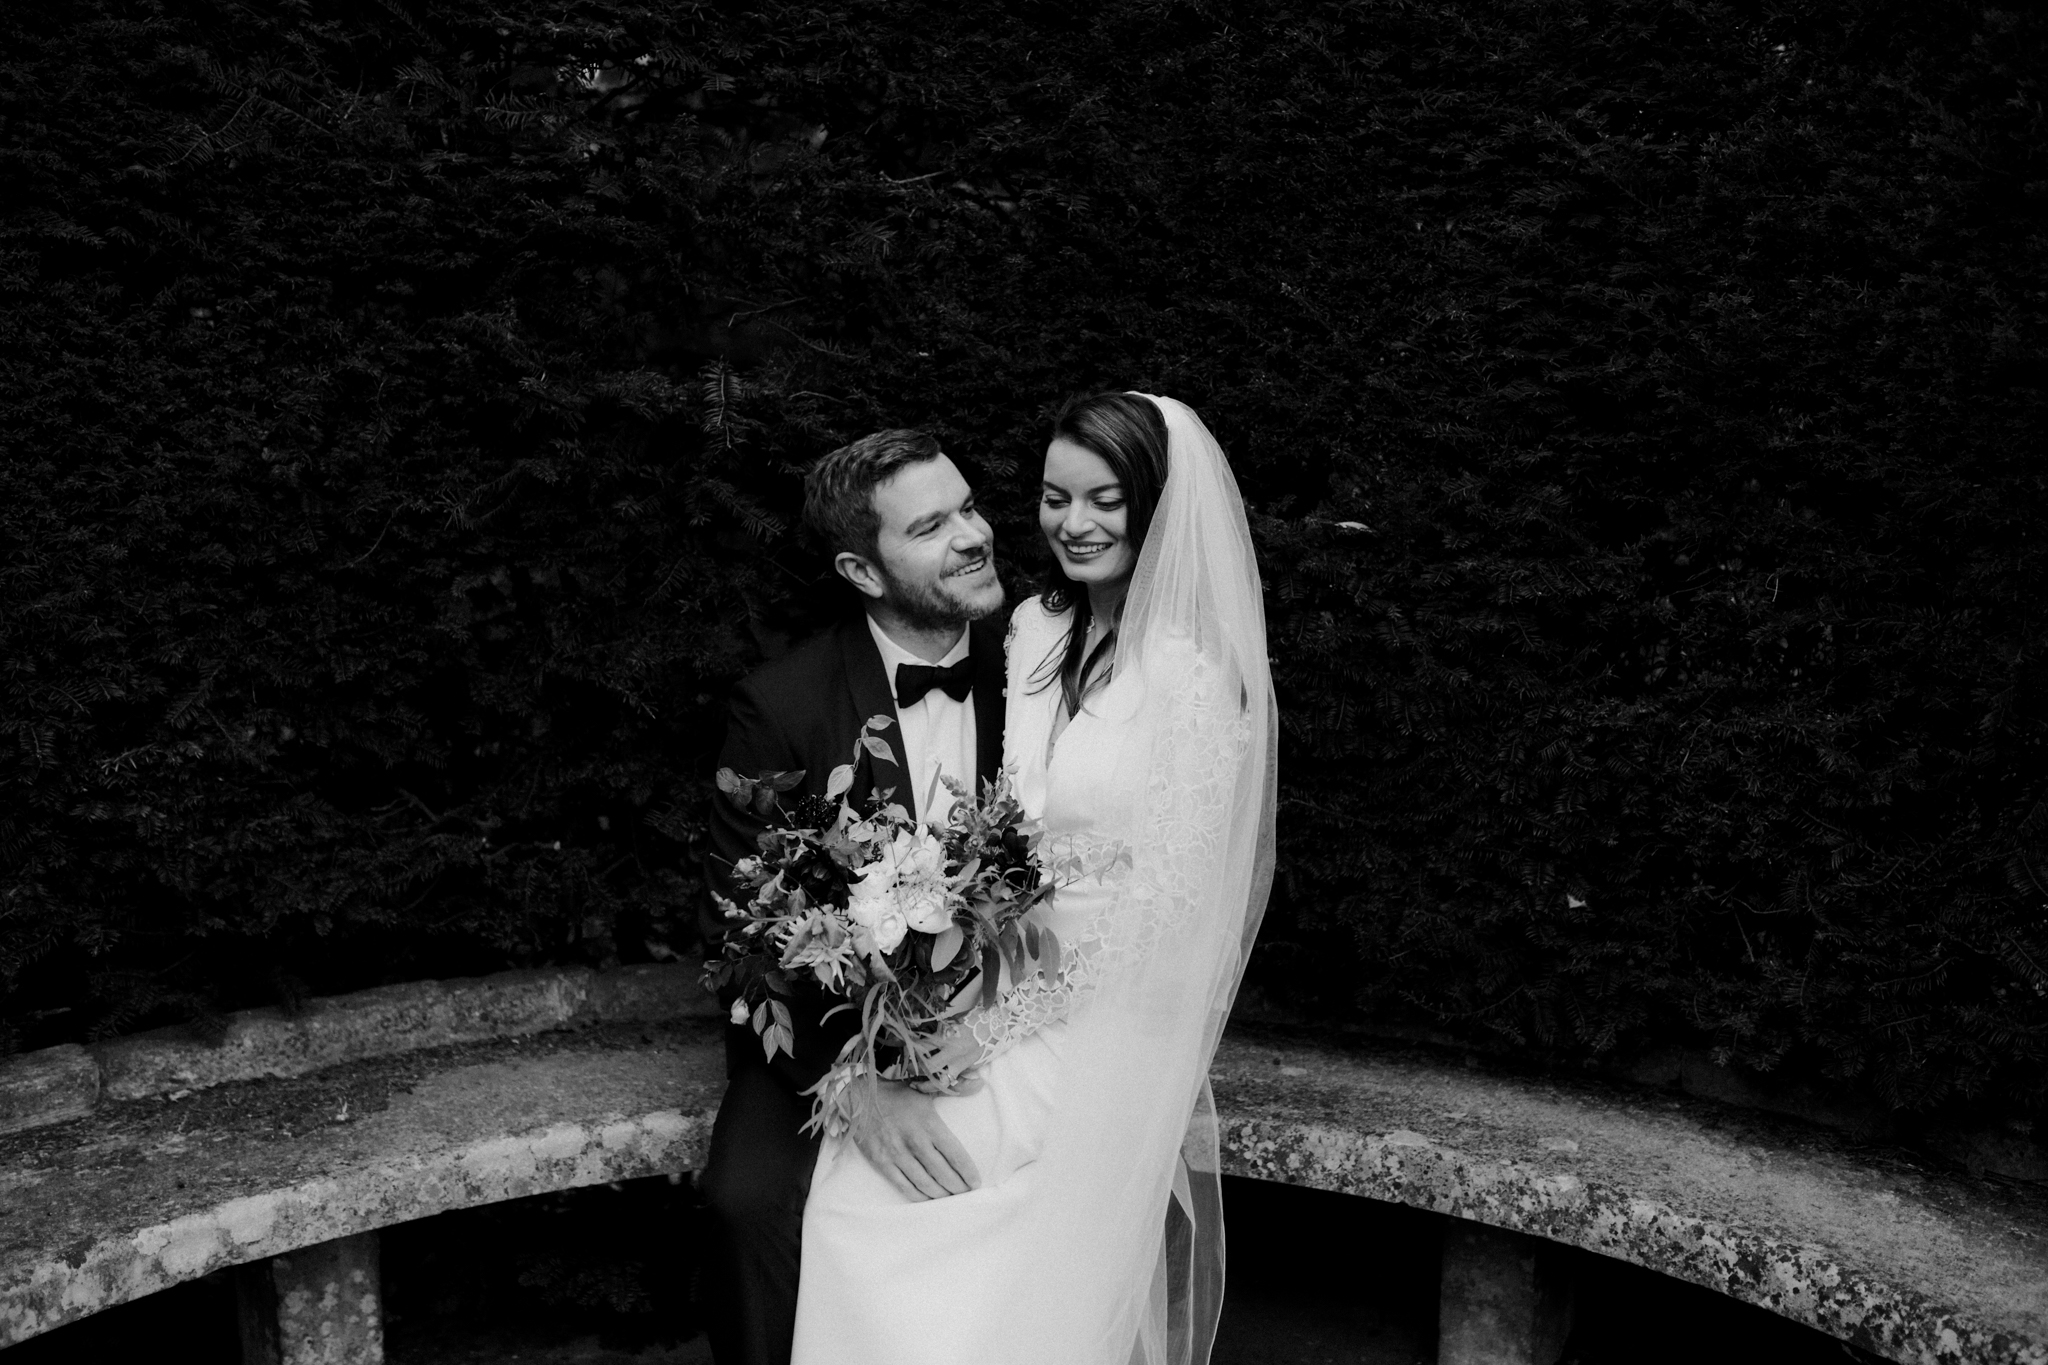 Bath Somerset Wedding Photographer - River and Fern